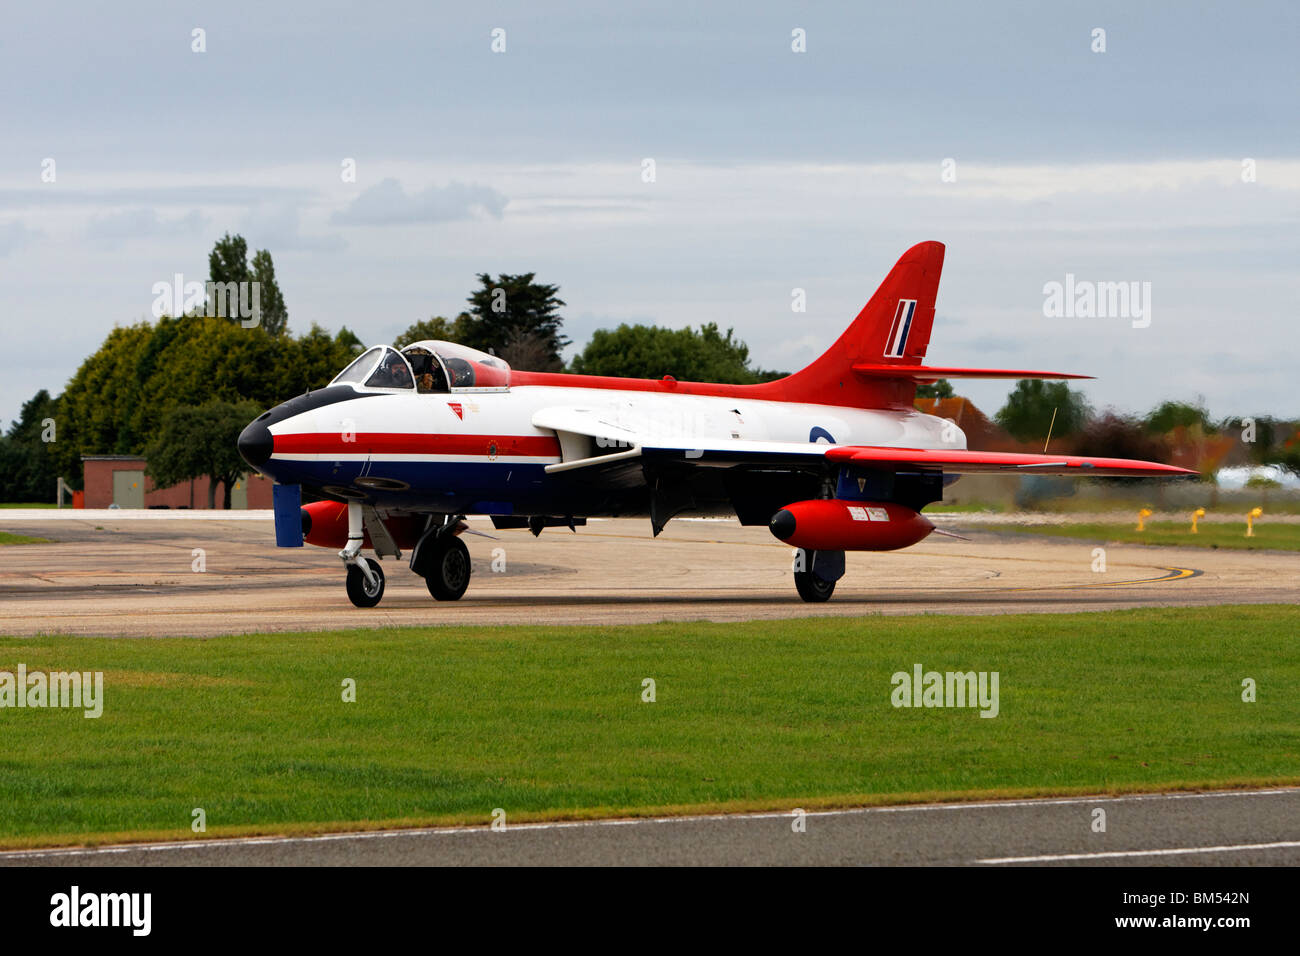 Skyblue Aviation's ex-ETPS red, white and blue Hawker Hunter FGA.9 XE601/G-ETPS taxying. - Stock Image